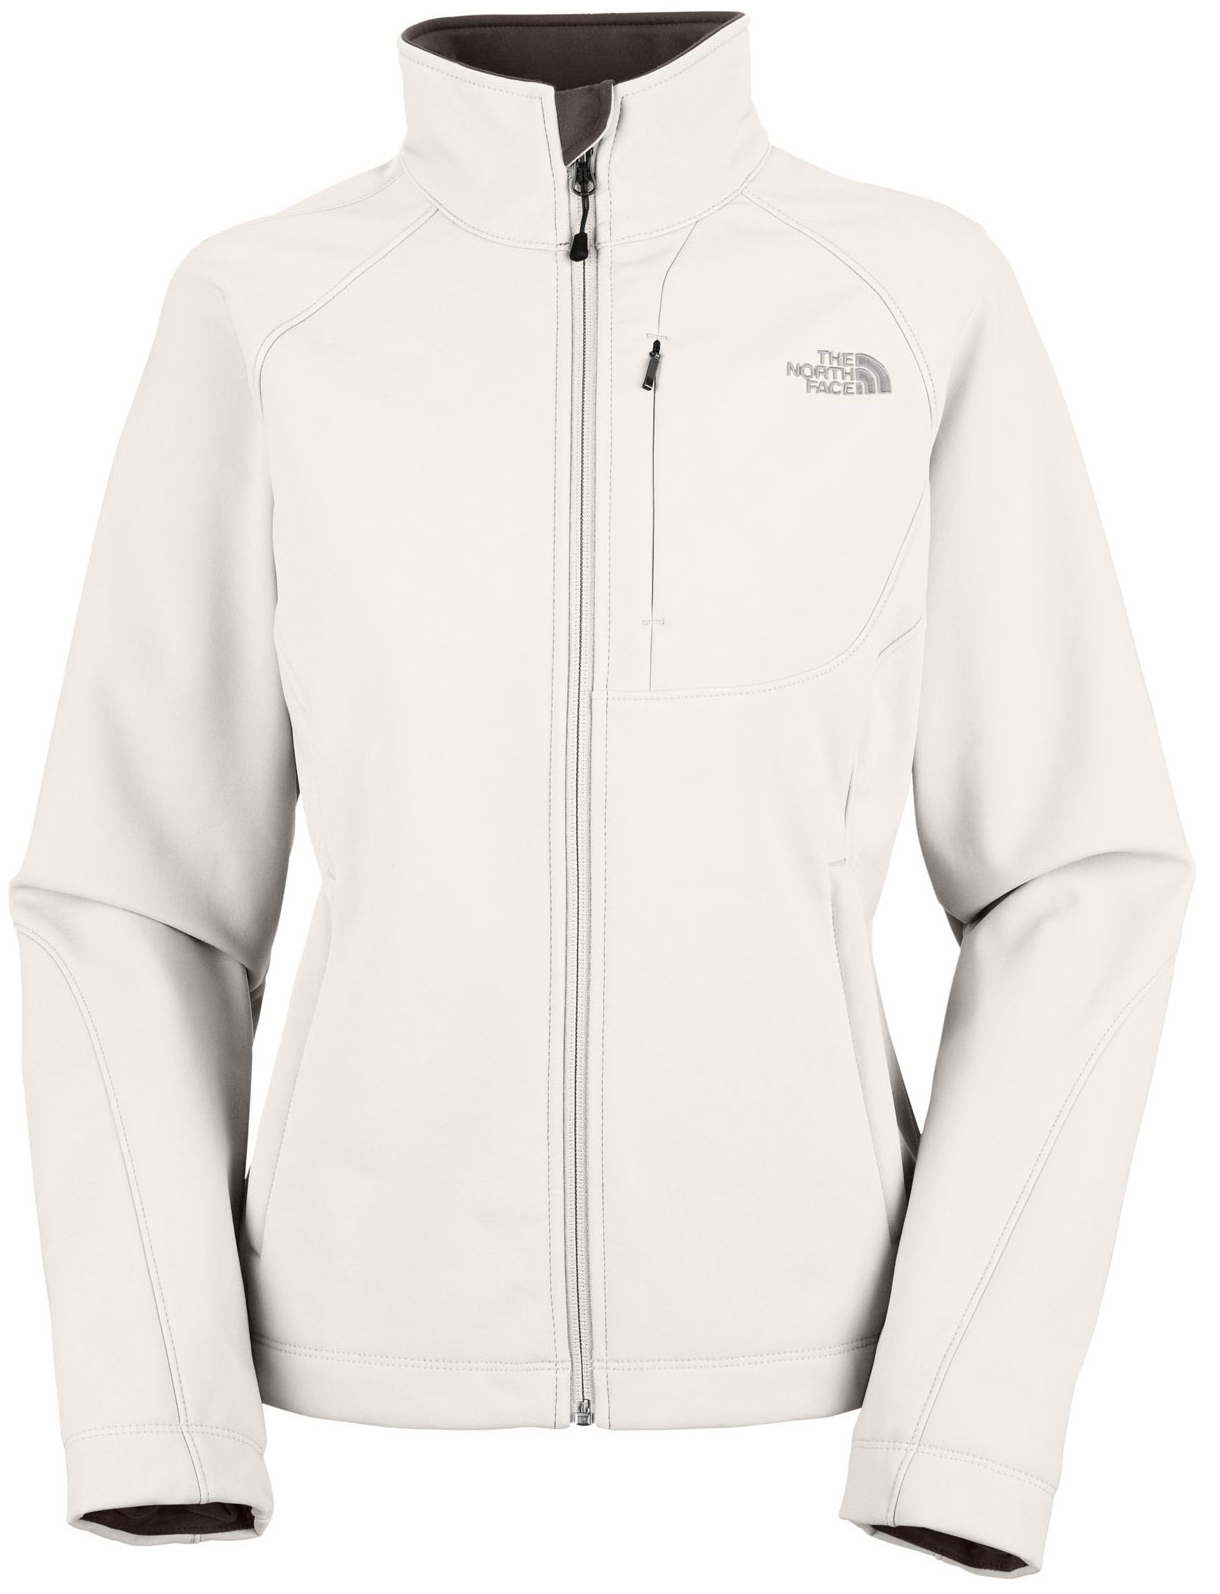 "Key Features of The North Face Apex Bionic Jacket: Avg Weight: 561.59 g (19.81 oz) Center Back: 25.5"" Fabric: 90D 351 g/m2 (10.3 oz/yd2) plain weave polyester TNF™ Apex ClimateBlock Built for outdoor activities in inclement weather, this lightweight soft shell is lightly insulated with a soft, comfortable Silken fleece lining. Standard fit TNF™ Apex ClimateBlock fabric wind permeability rated at 0 CFM Fleece backer Napoleon chest pocket Two hand pockets Internal stretch comfort cuffs - $111.95"